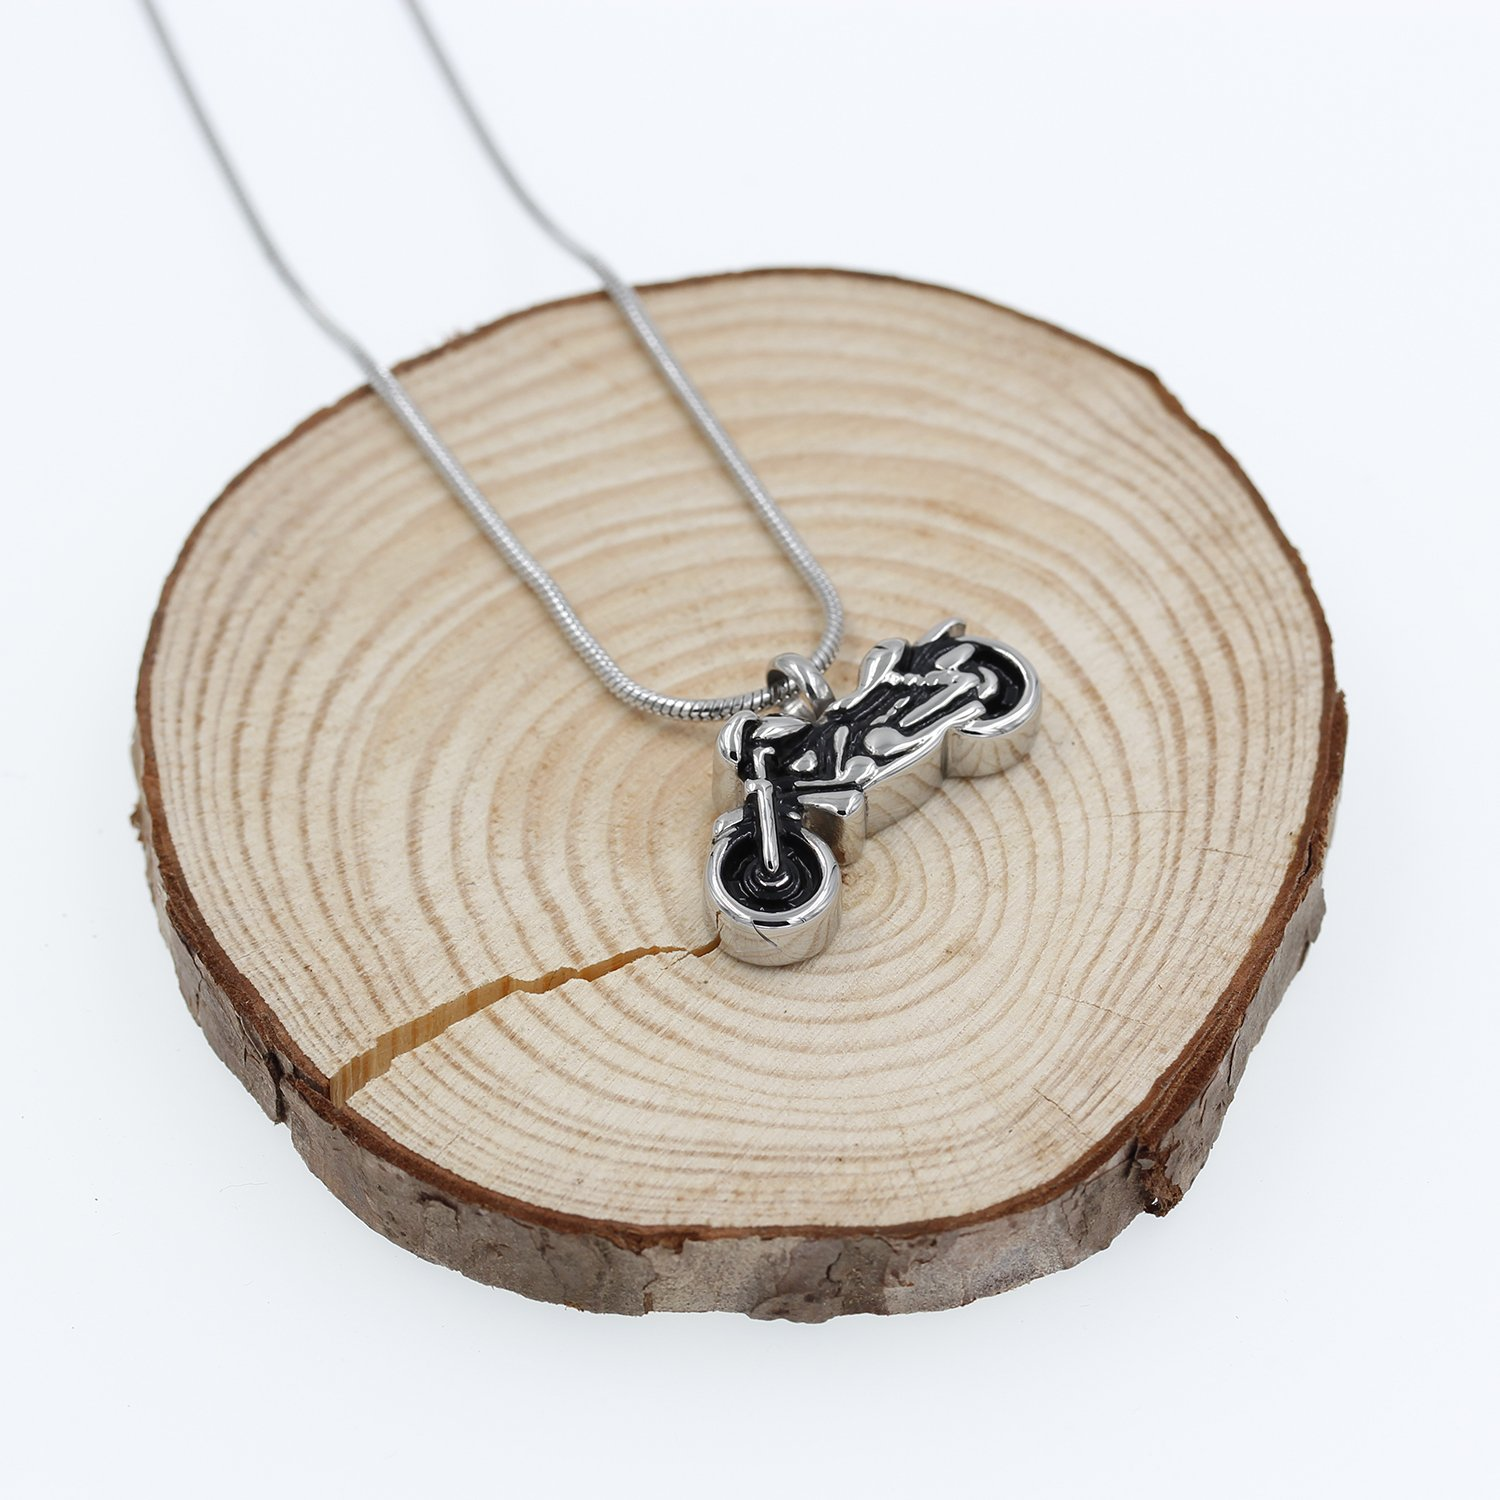 Hufan Motorcyle Cremation Jewelry for Ashes with Funnel and Chain by Hufan (Image #5)